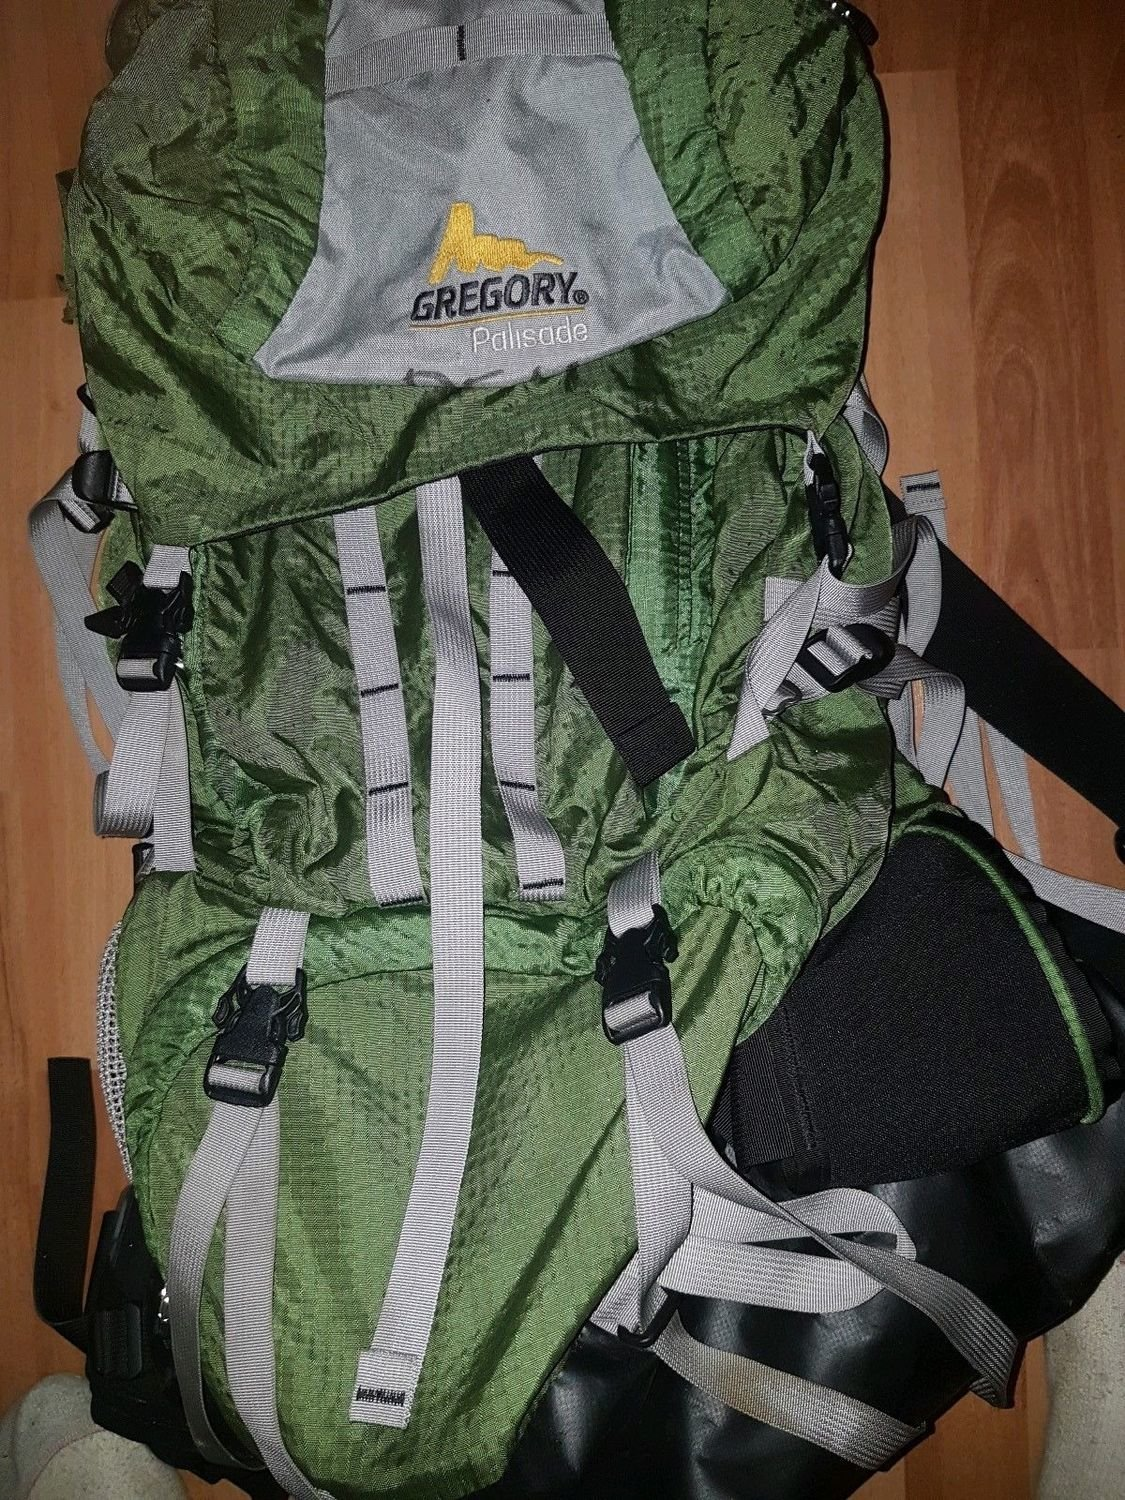 Gregory Palisade 80L Expedition Backpack - Small Torso